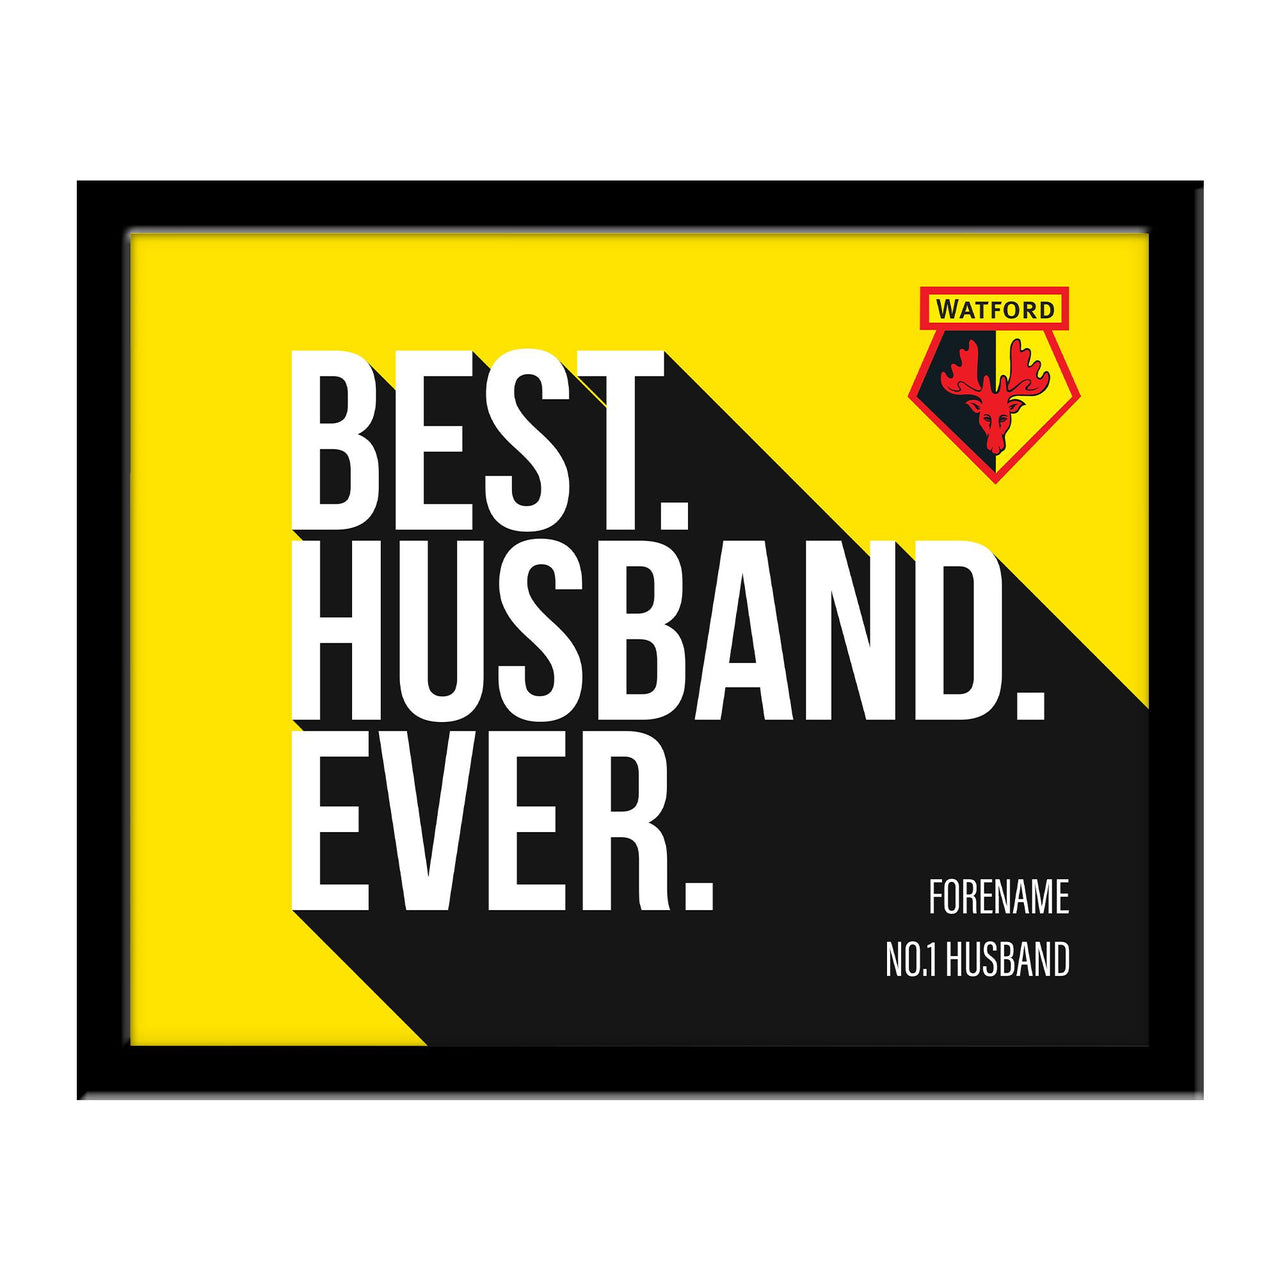 Watford Best Husband Ever 10 x 8 Photo Framed